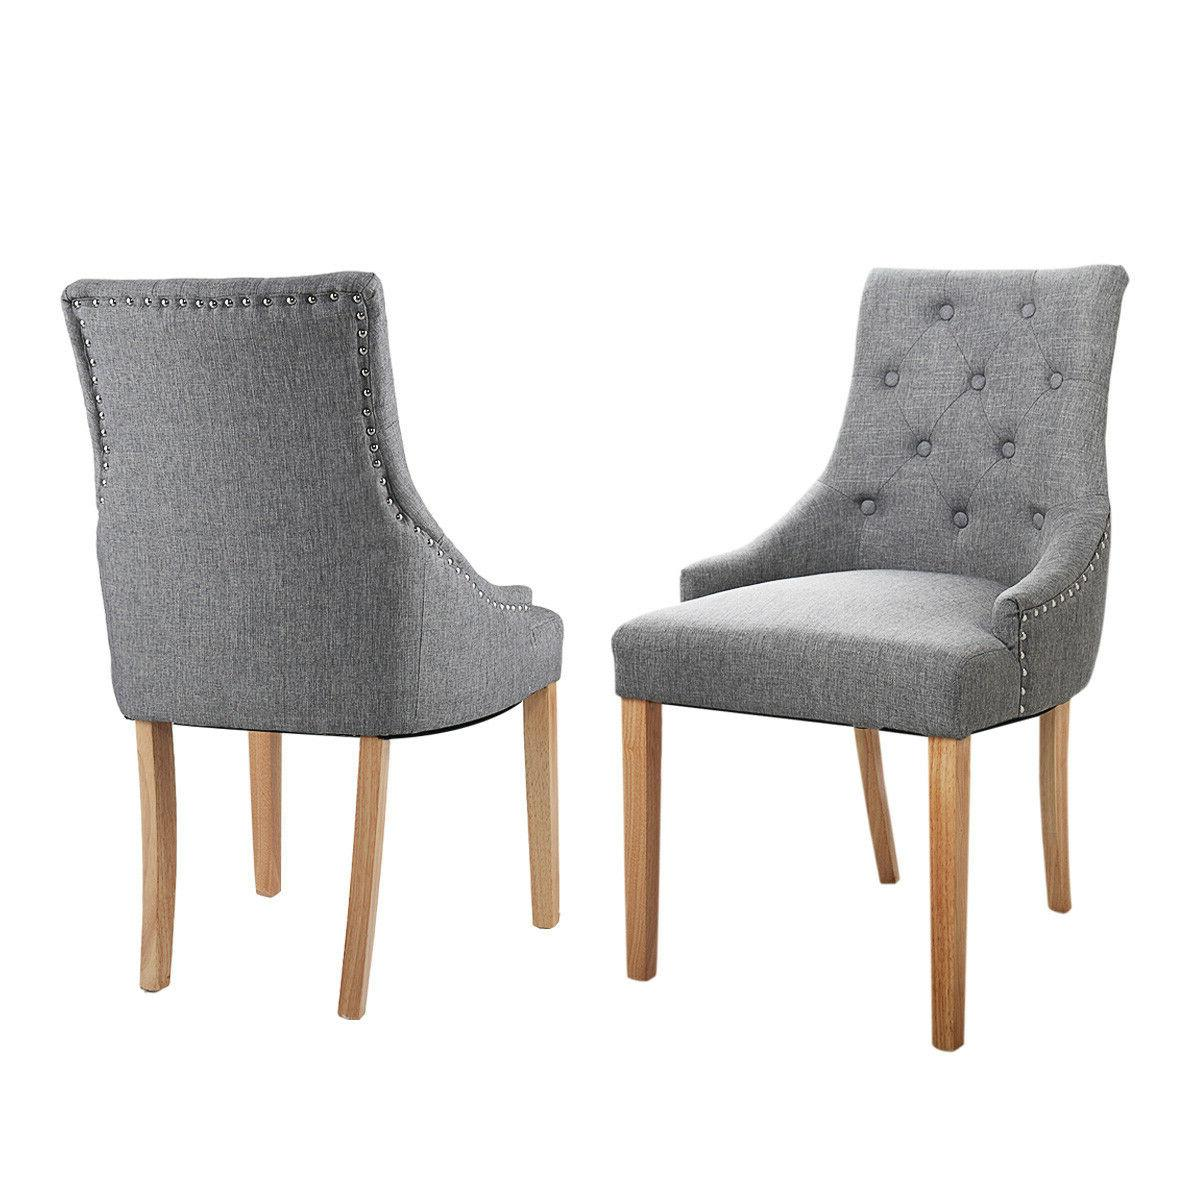 Gray Dining Chairs 2 Wood Furniture